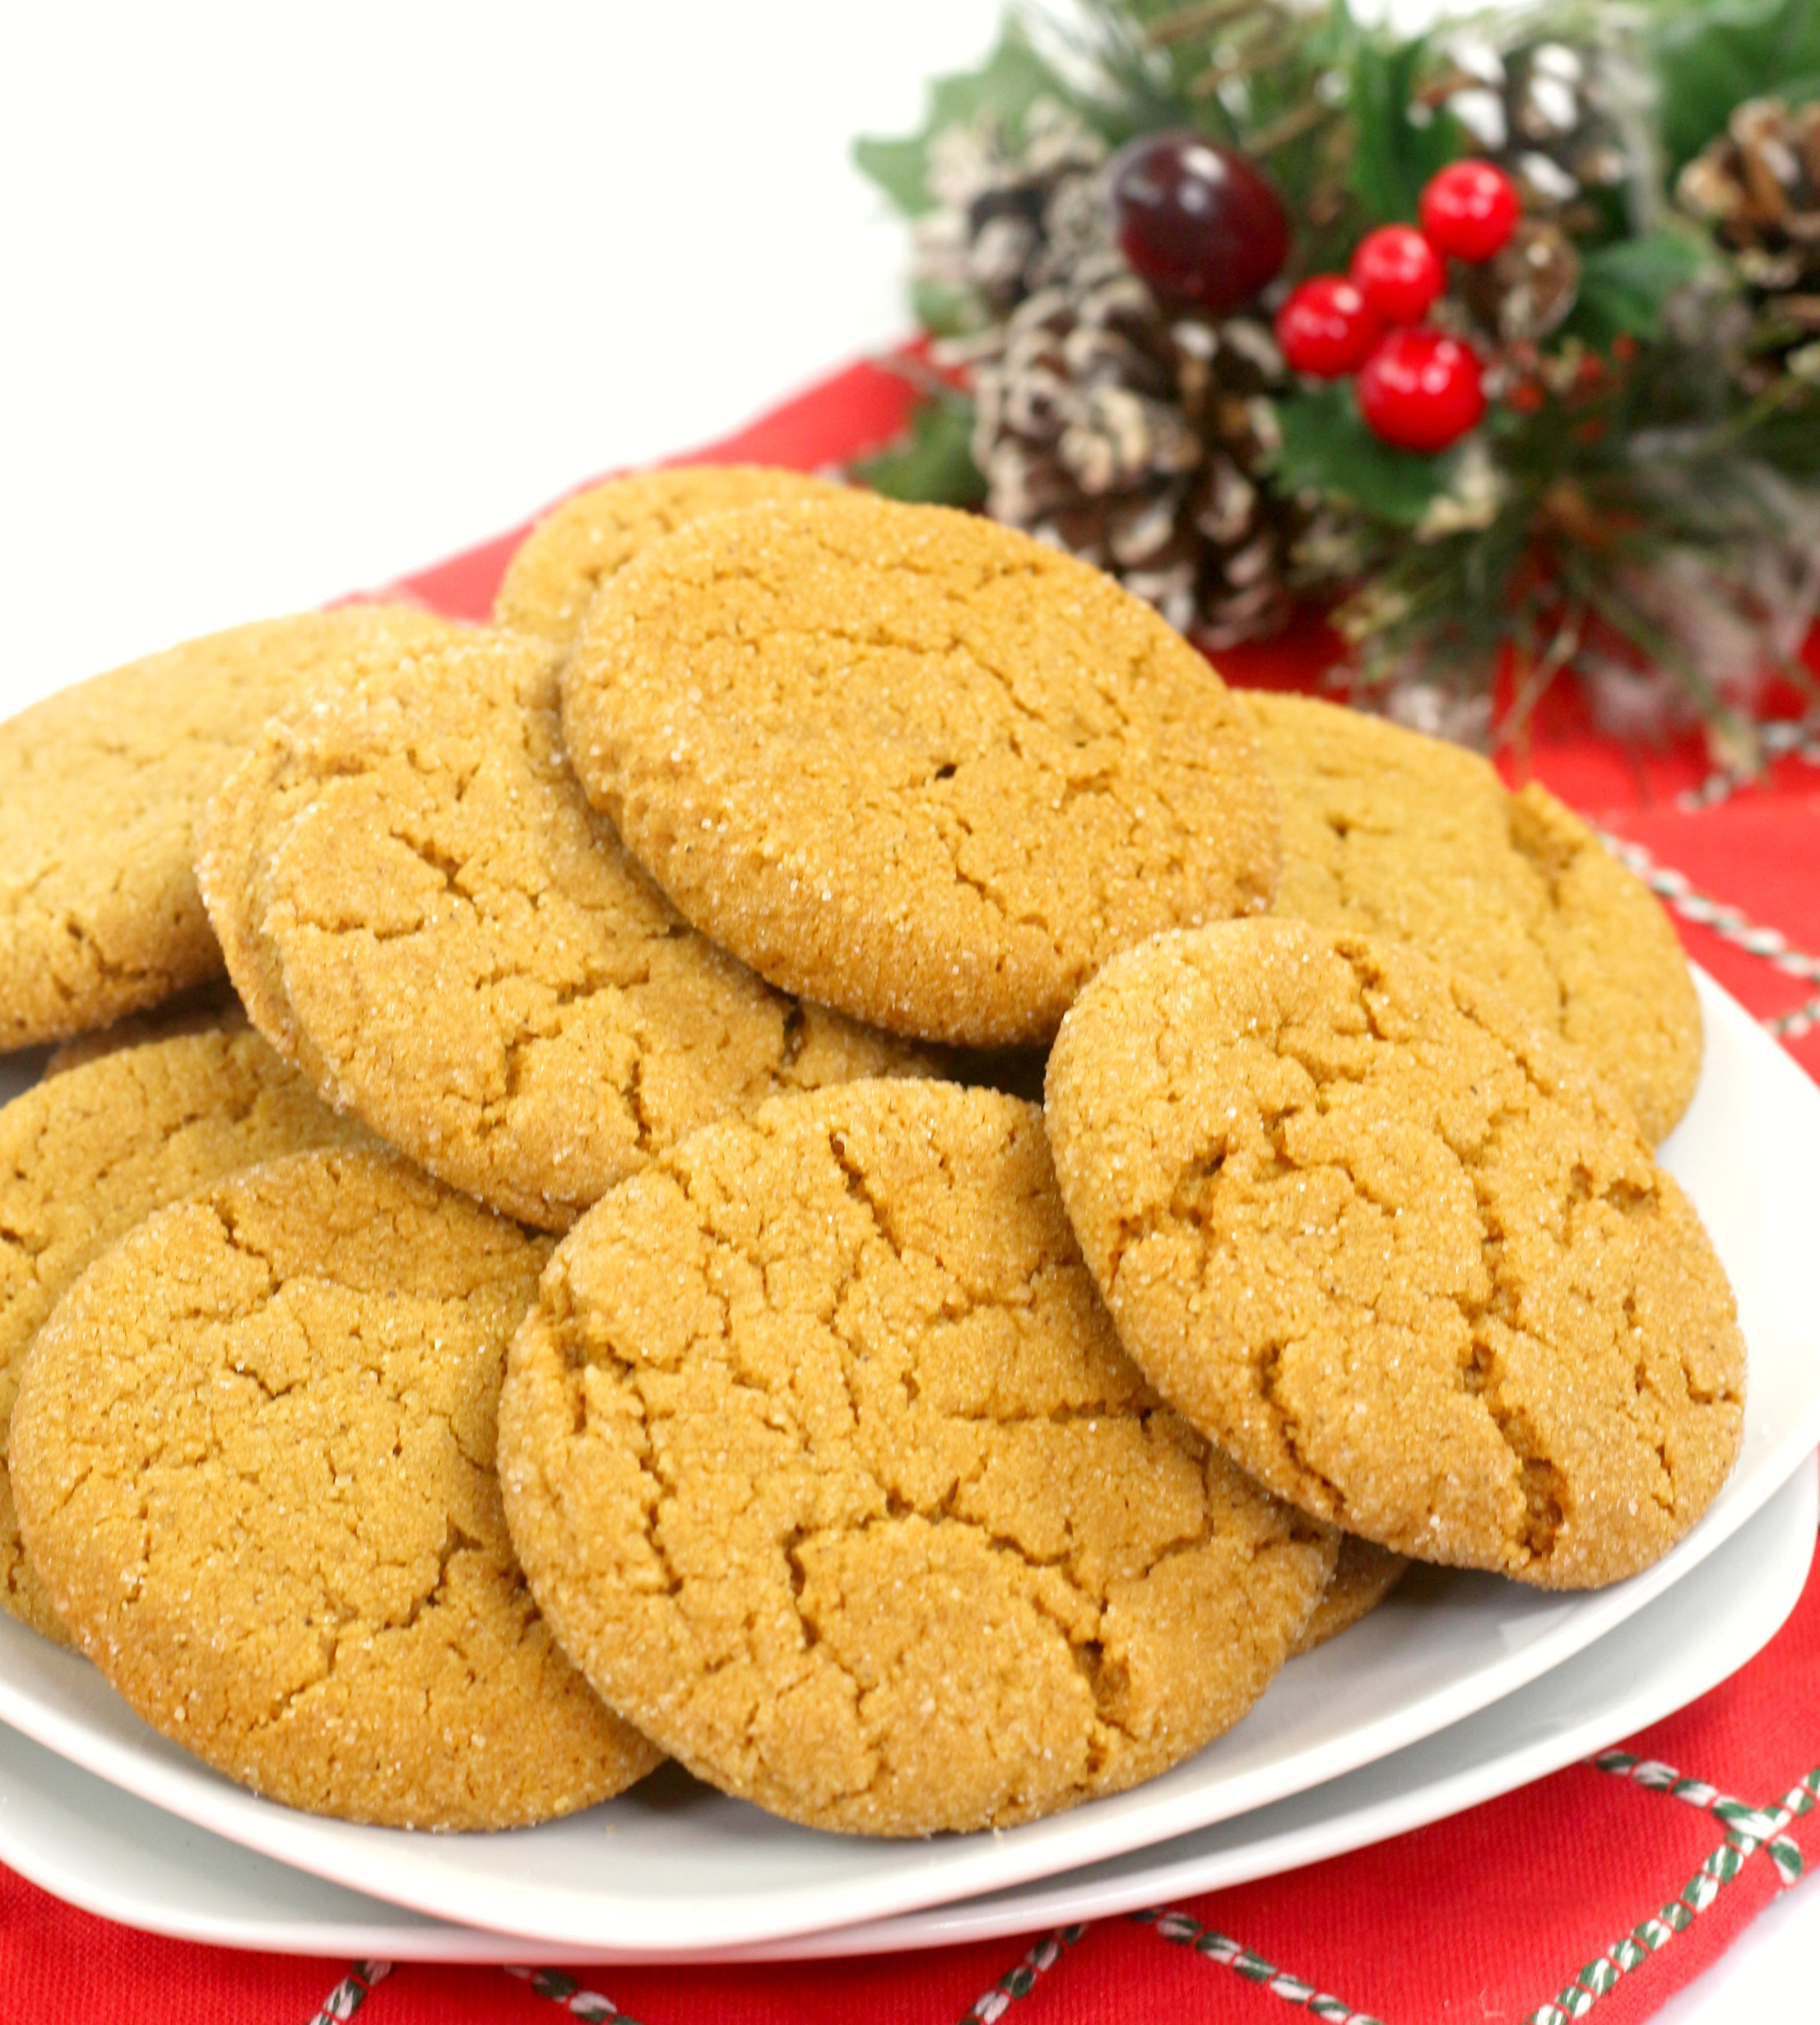 The Best Soft Baked Gingerbread Cookie recipe. These are the perfect holiday cookies to dip in hot chocolate or coffee.